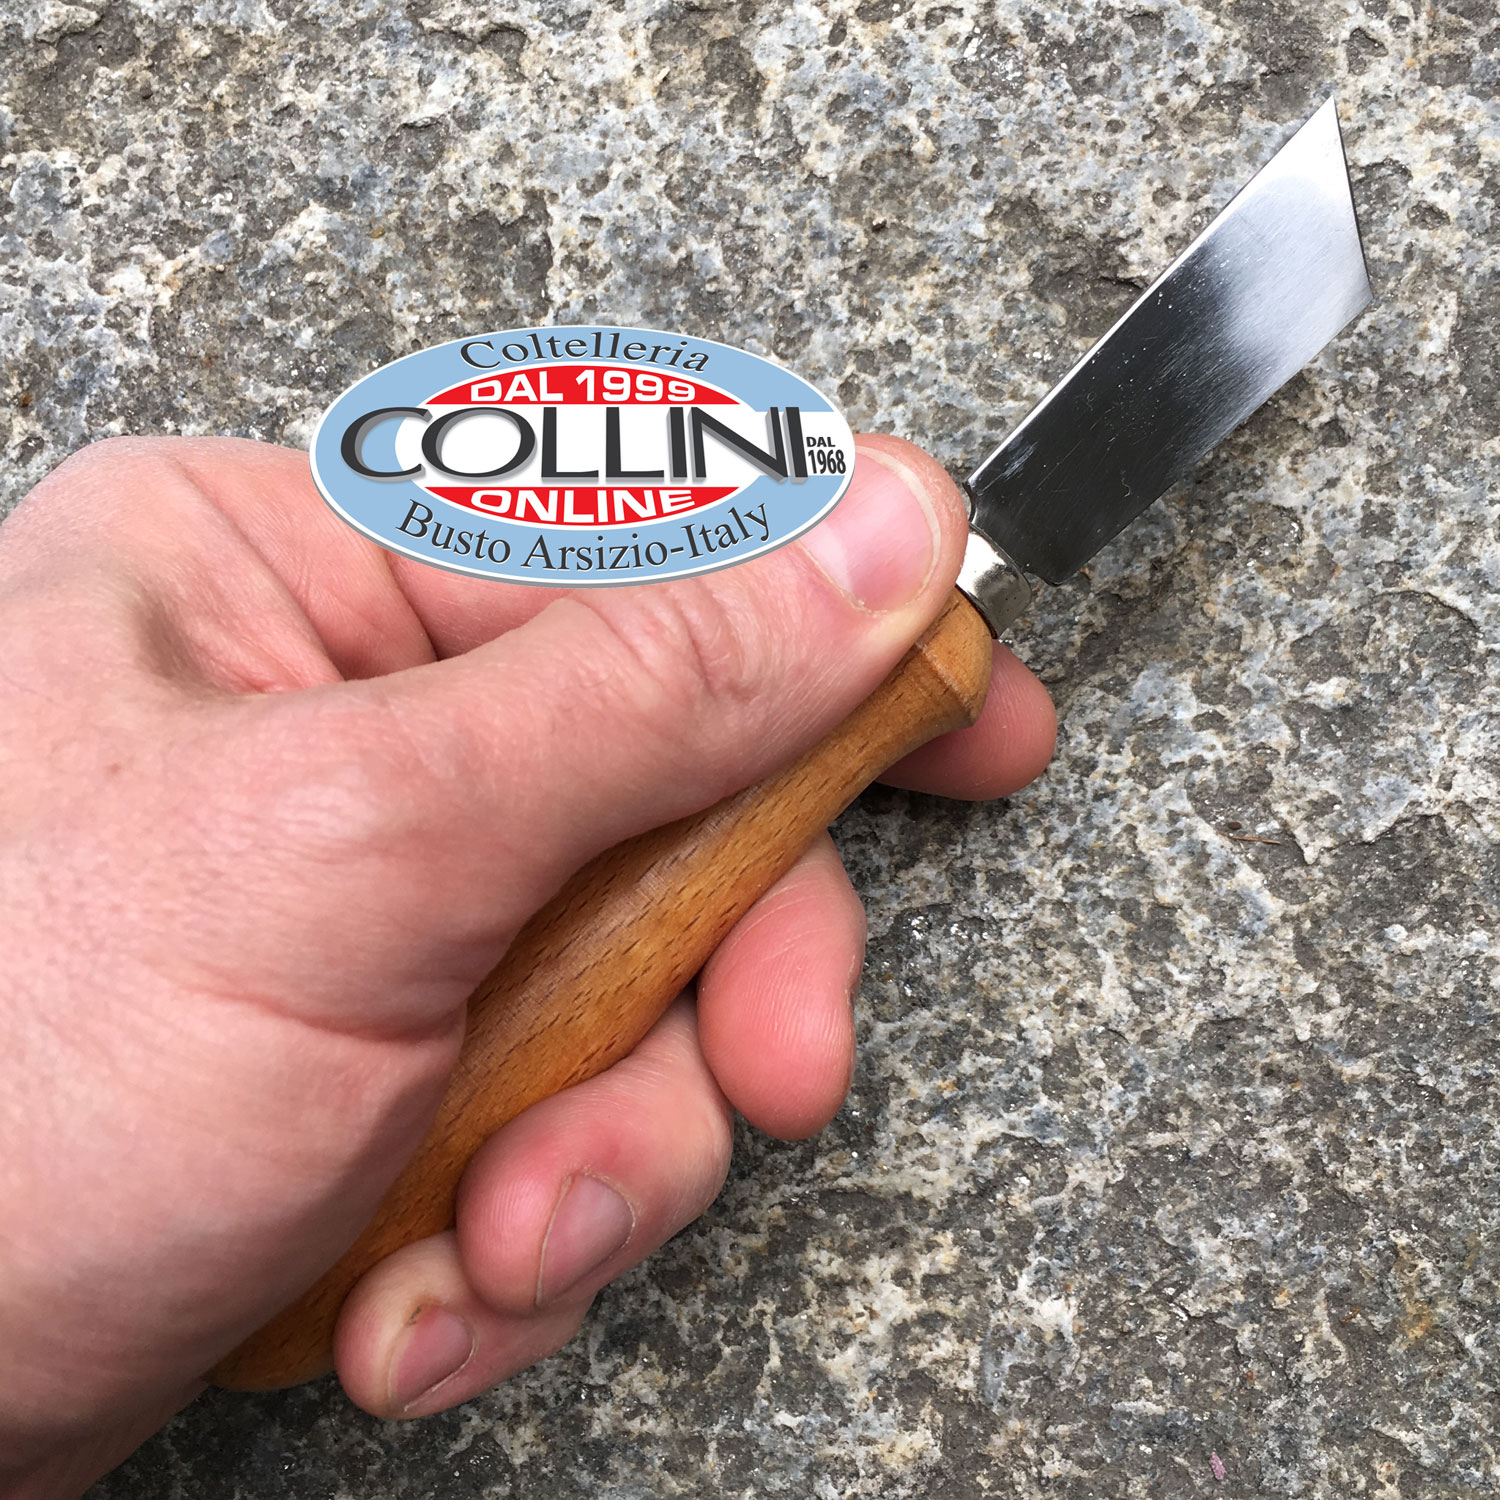 Carving Knife Google Translate: Chip Carving Knives Kerb 8 Stecher Gross